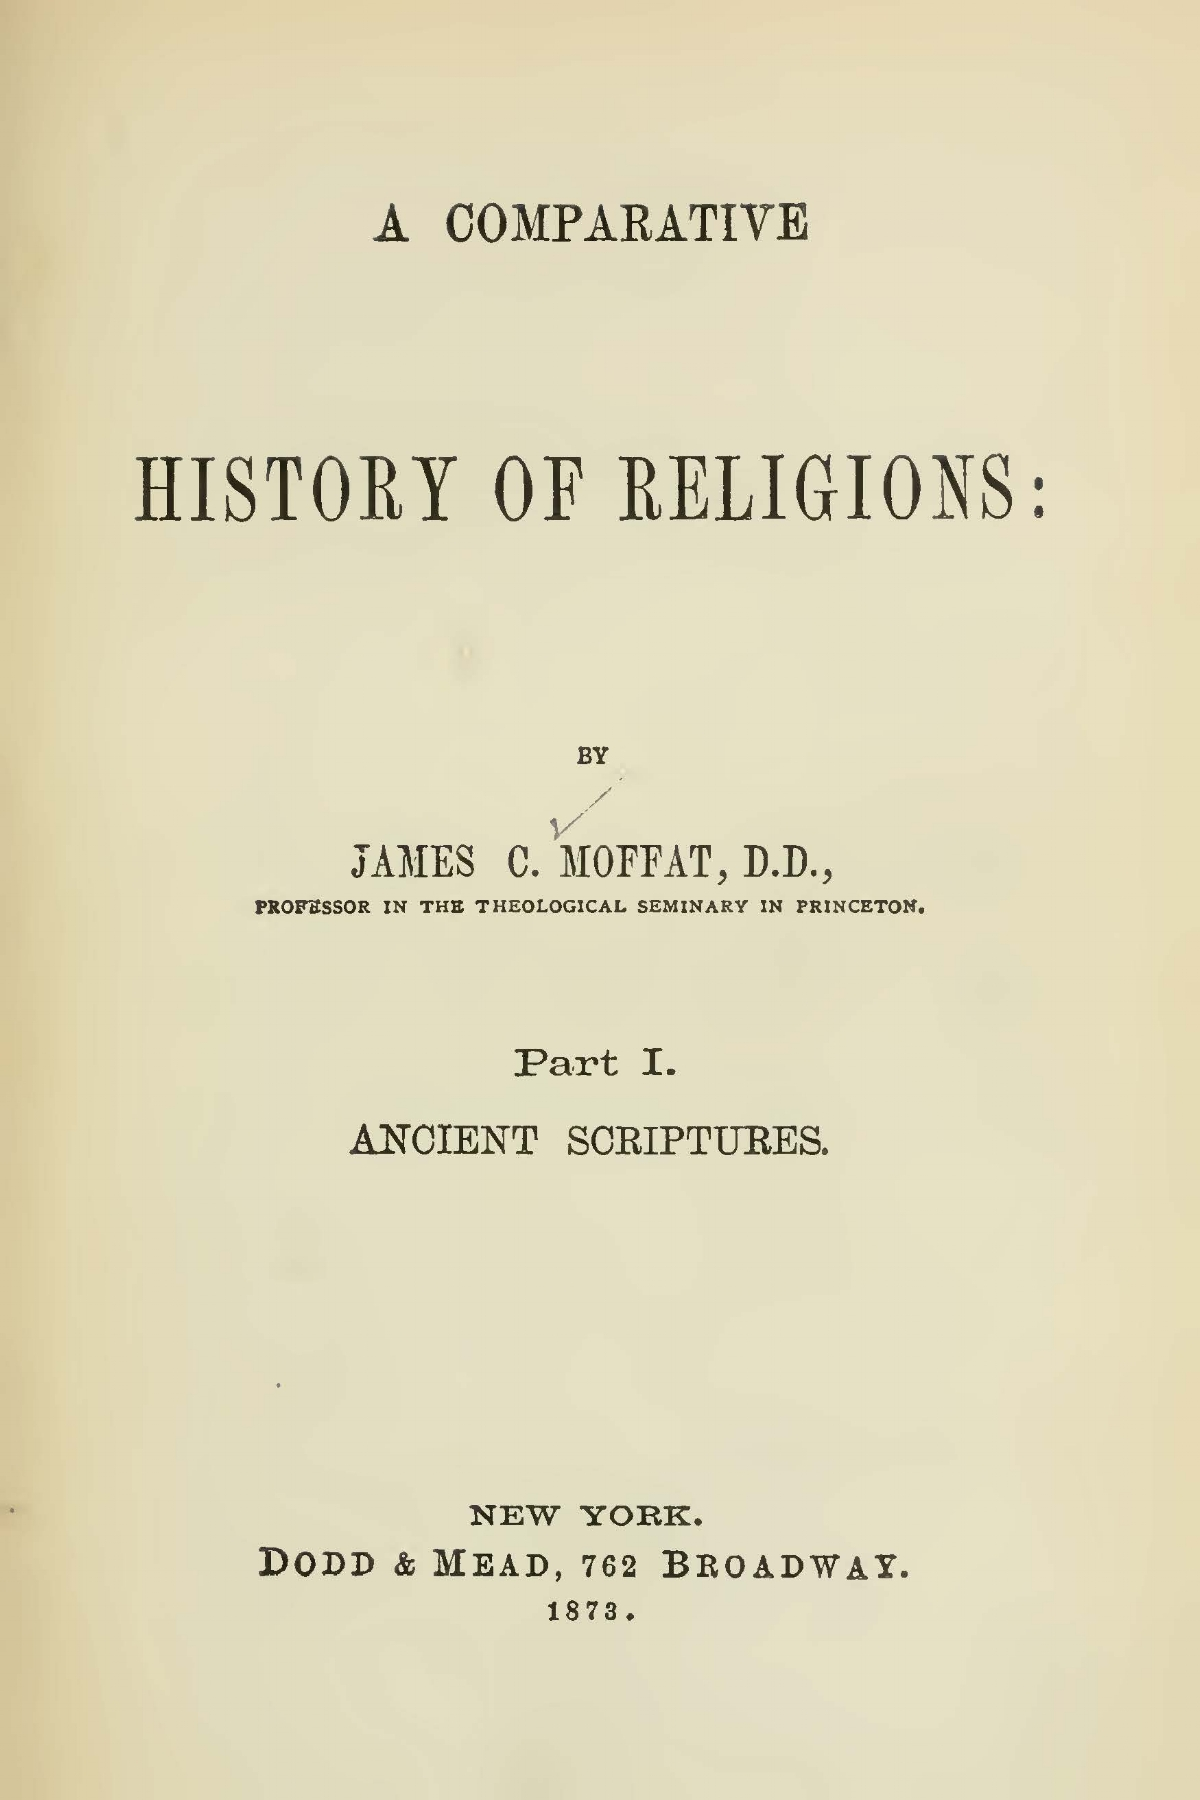 Moffat, James Clement, A Comparative History of Religions, Vol. 1 Title Page.jpg